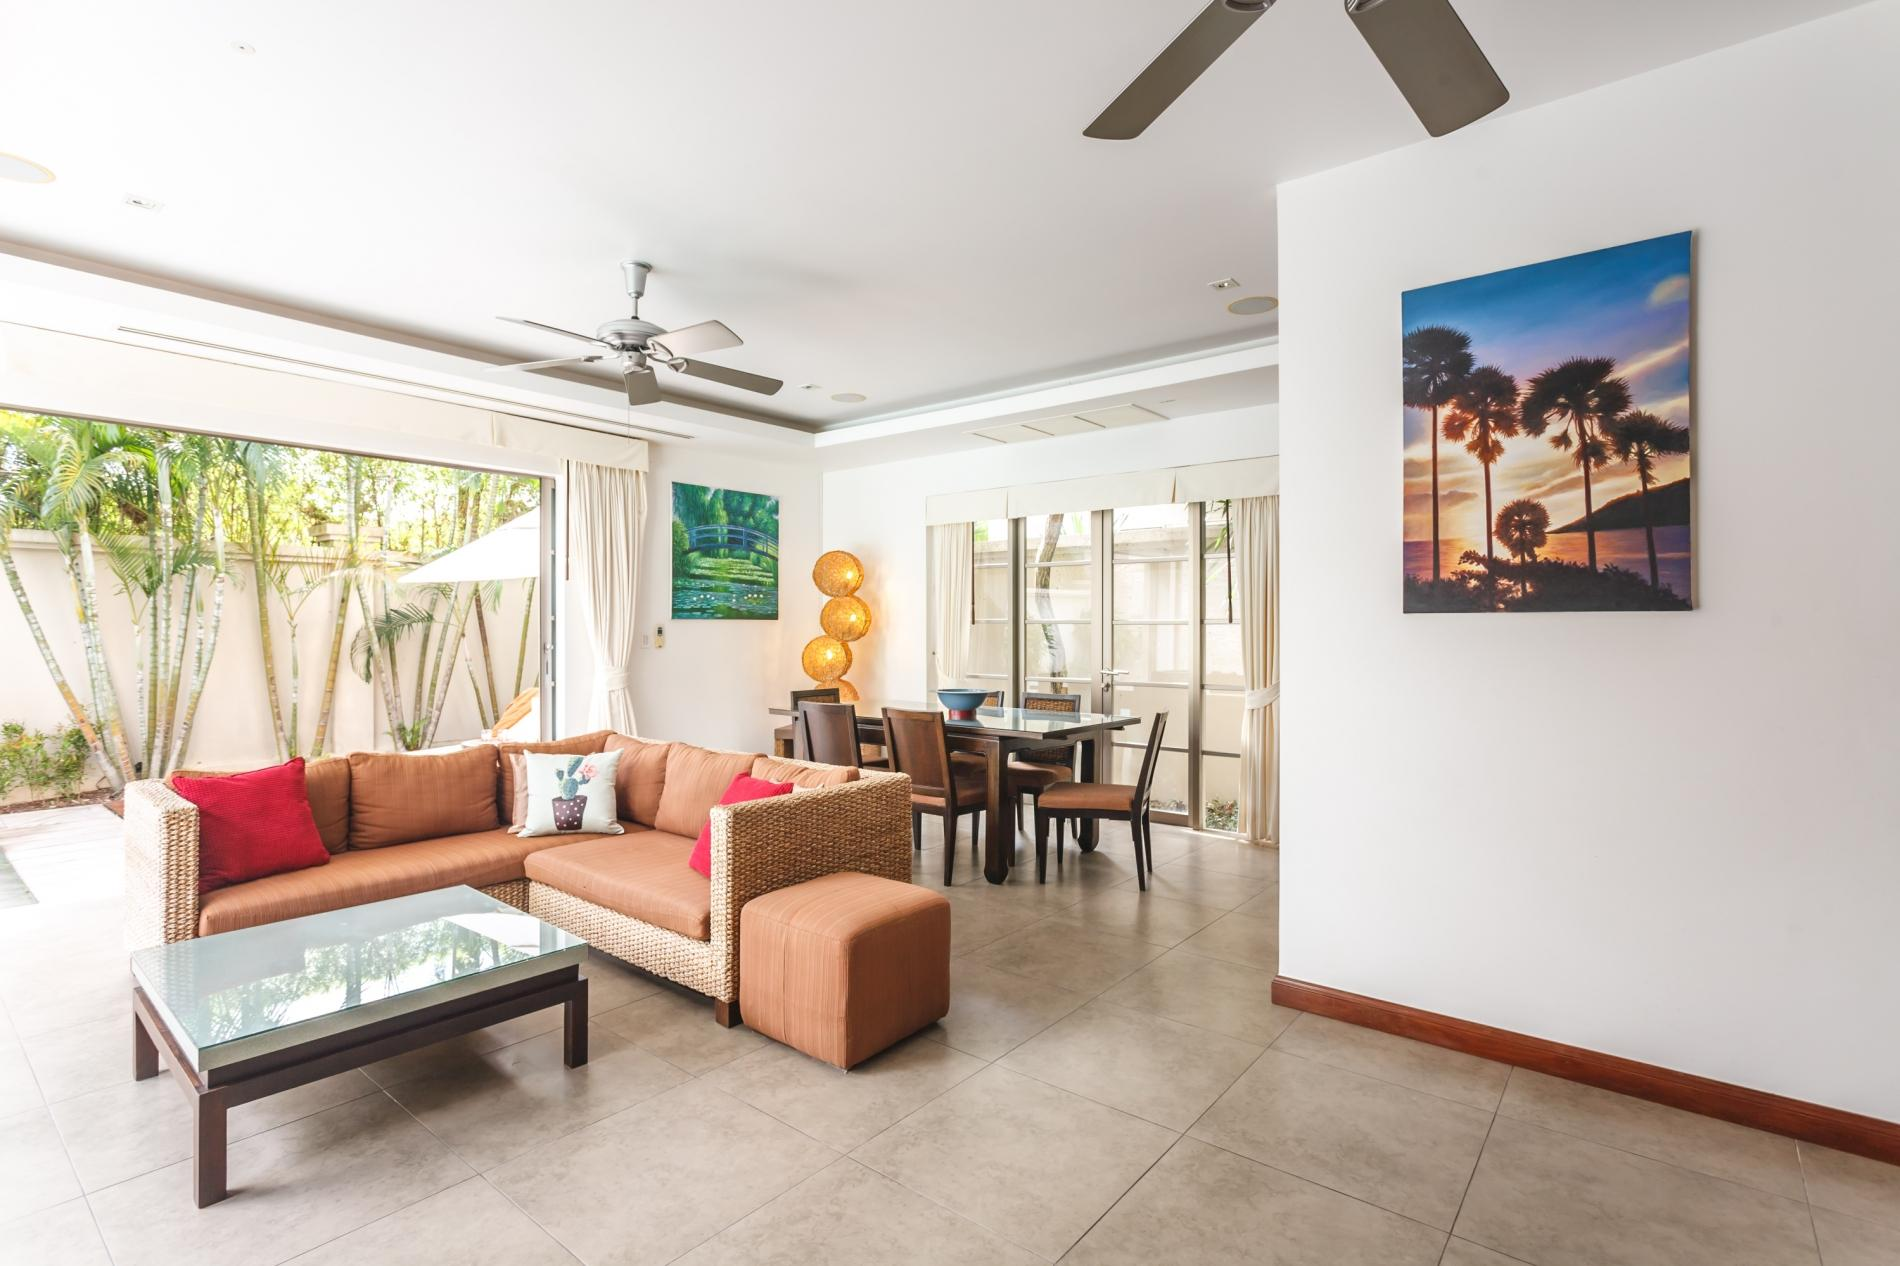 TR111 - Private pool villa in Bang Tao Residence - 3 bedrooms photo 16726717